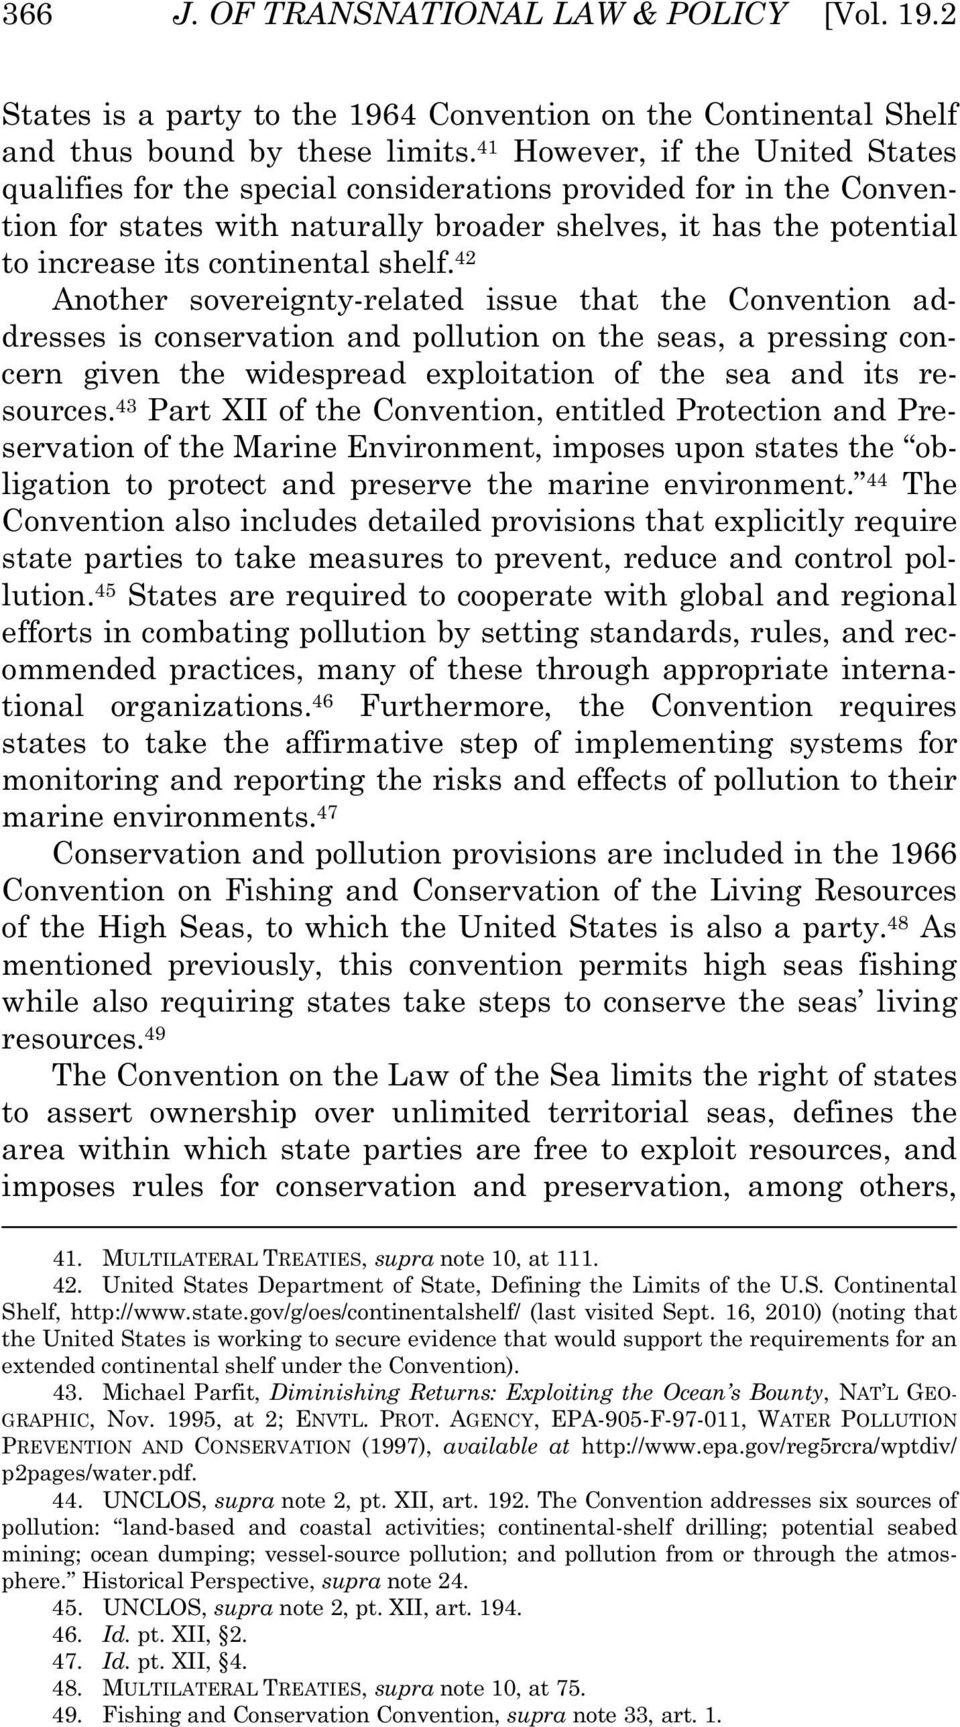 shelf. 42 Another sovereignty-related issue that the Convention addresses is conservation and pollution on the seas, a pressing concern given the widespread exploitation of the sea and its resources.